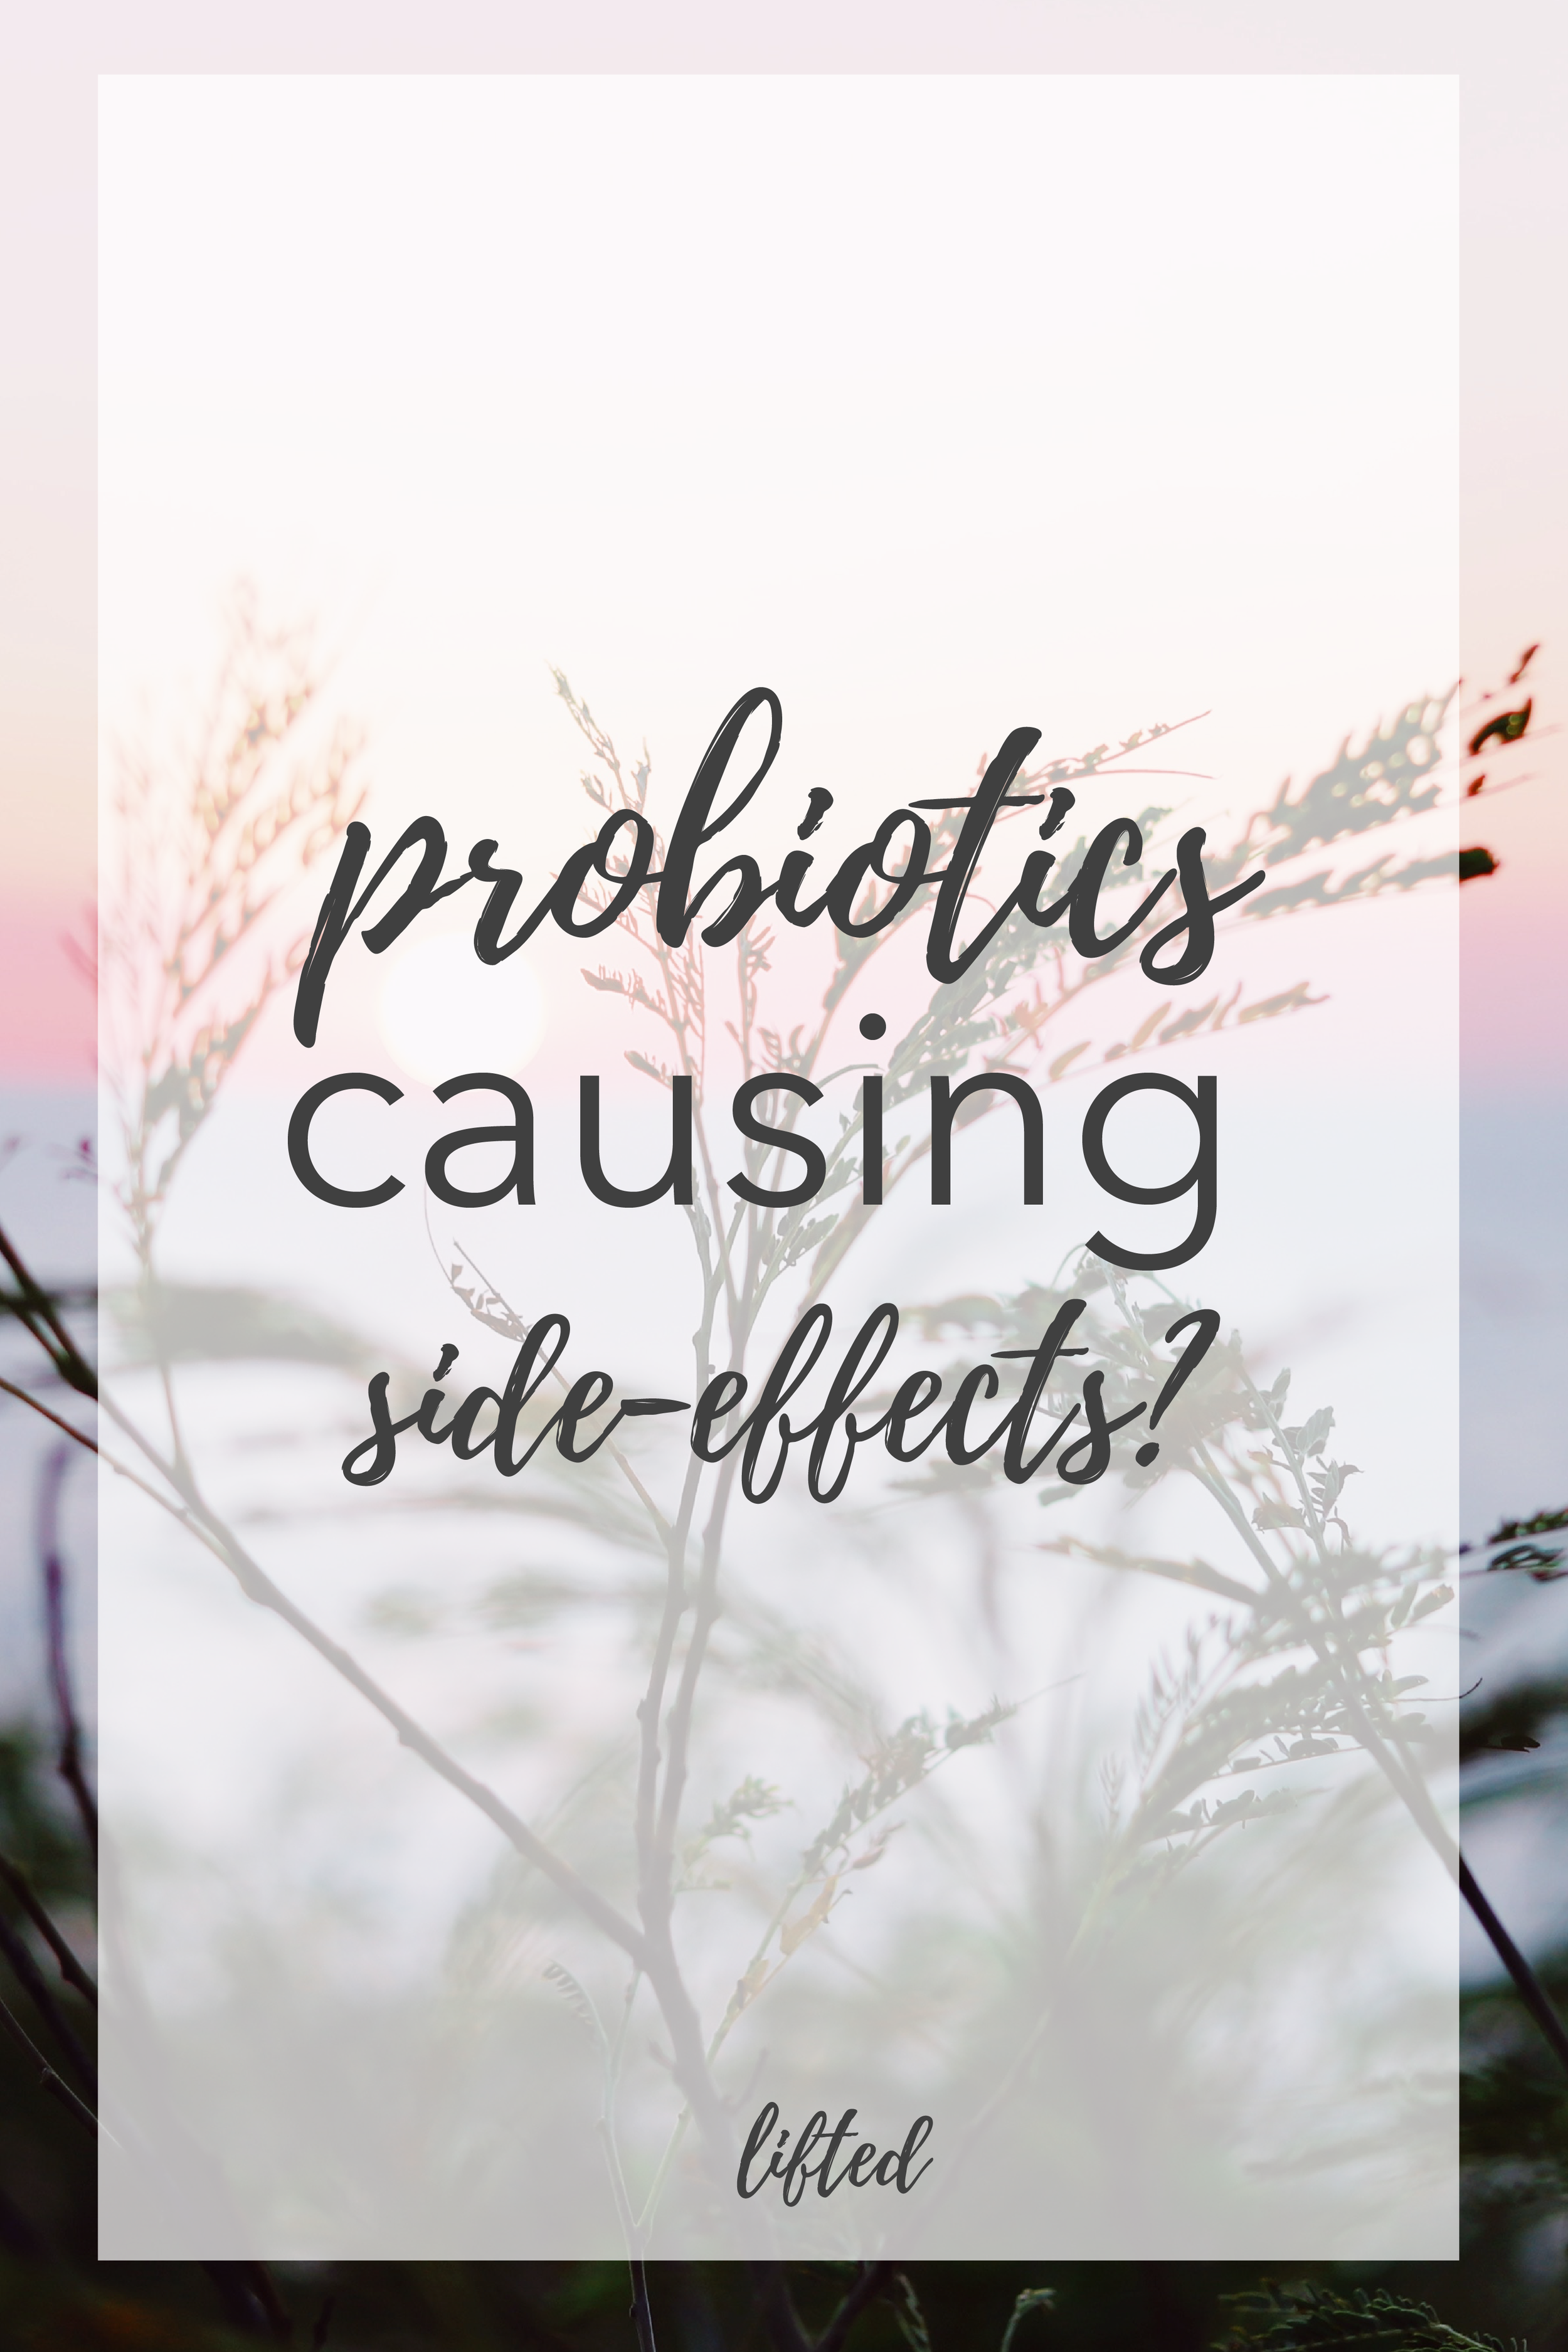 probiotics causing side-effects-01.png